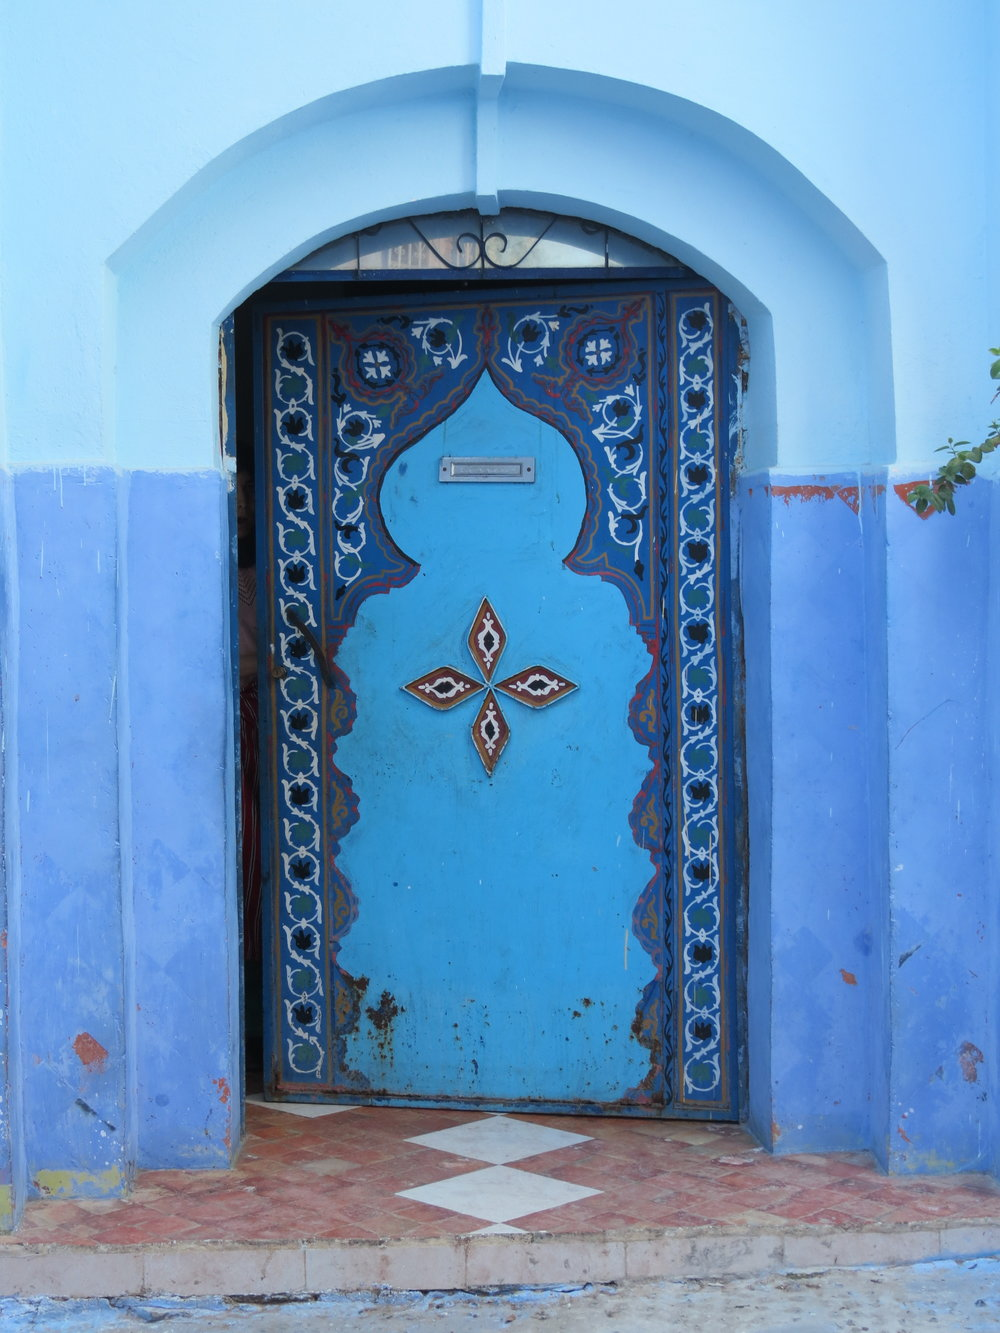 A blue keyhole door, traditional of Morocco. Found in Chefchaouen.